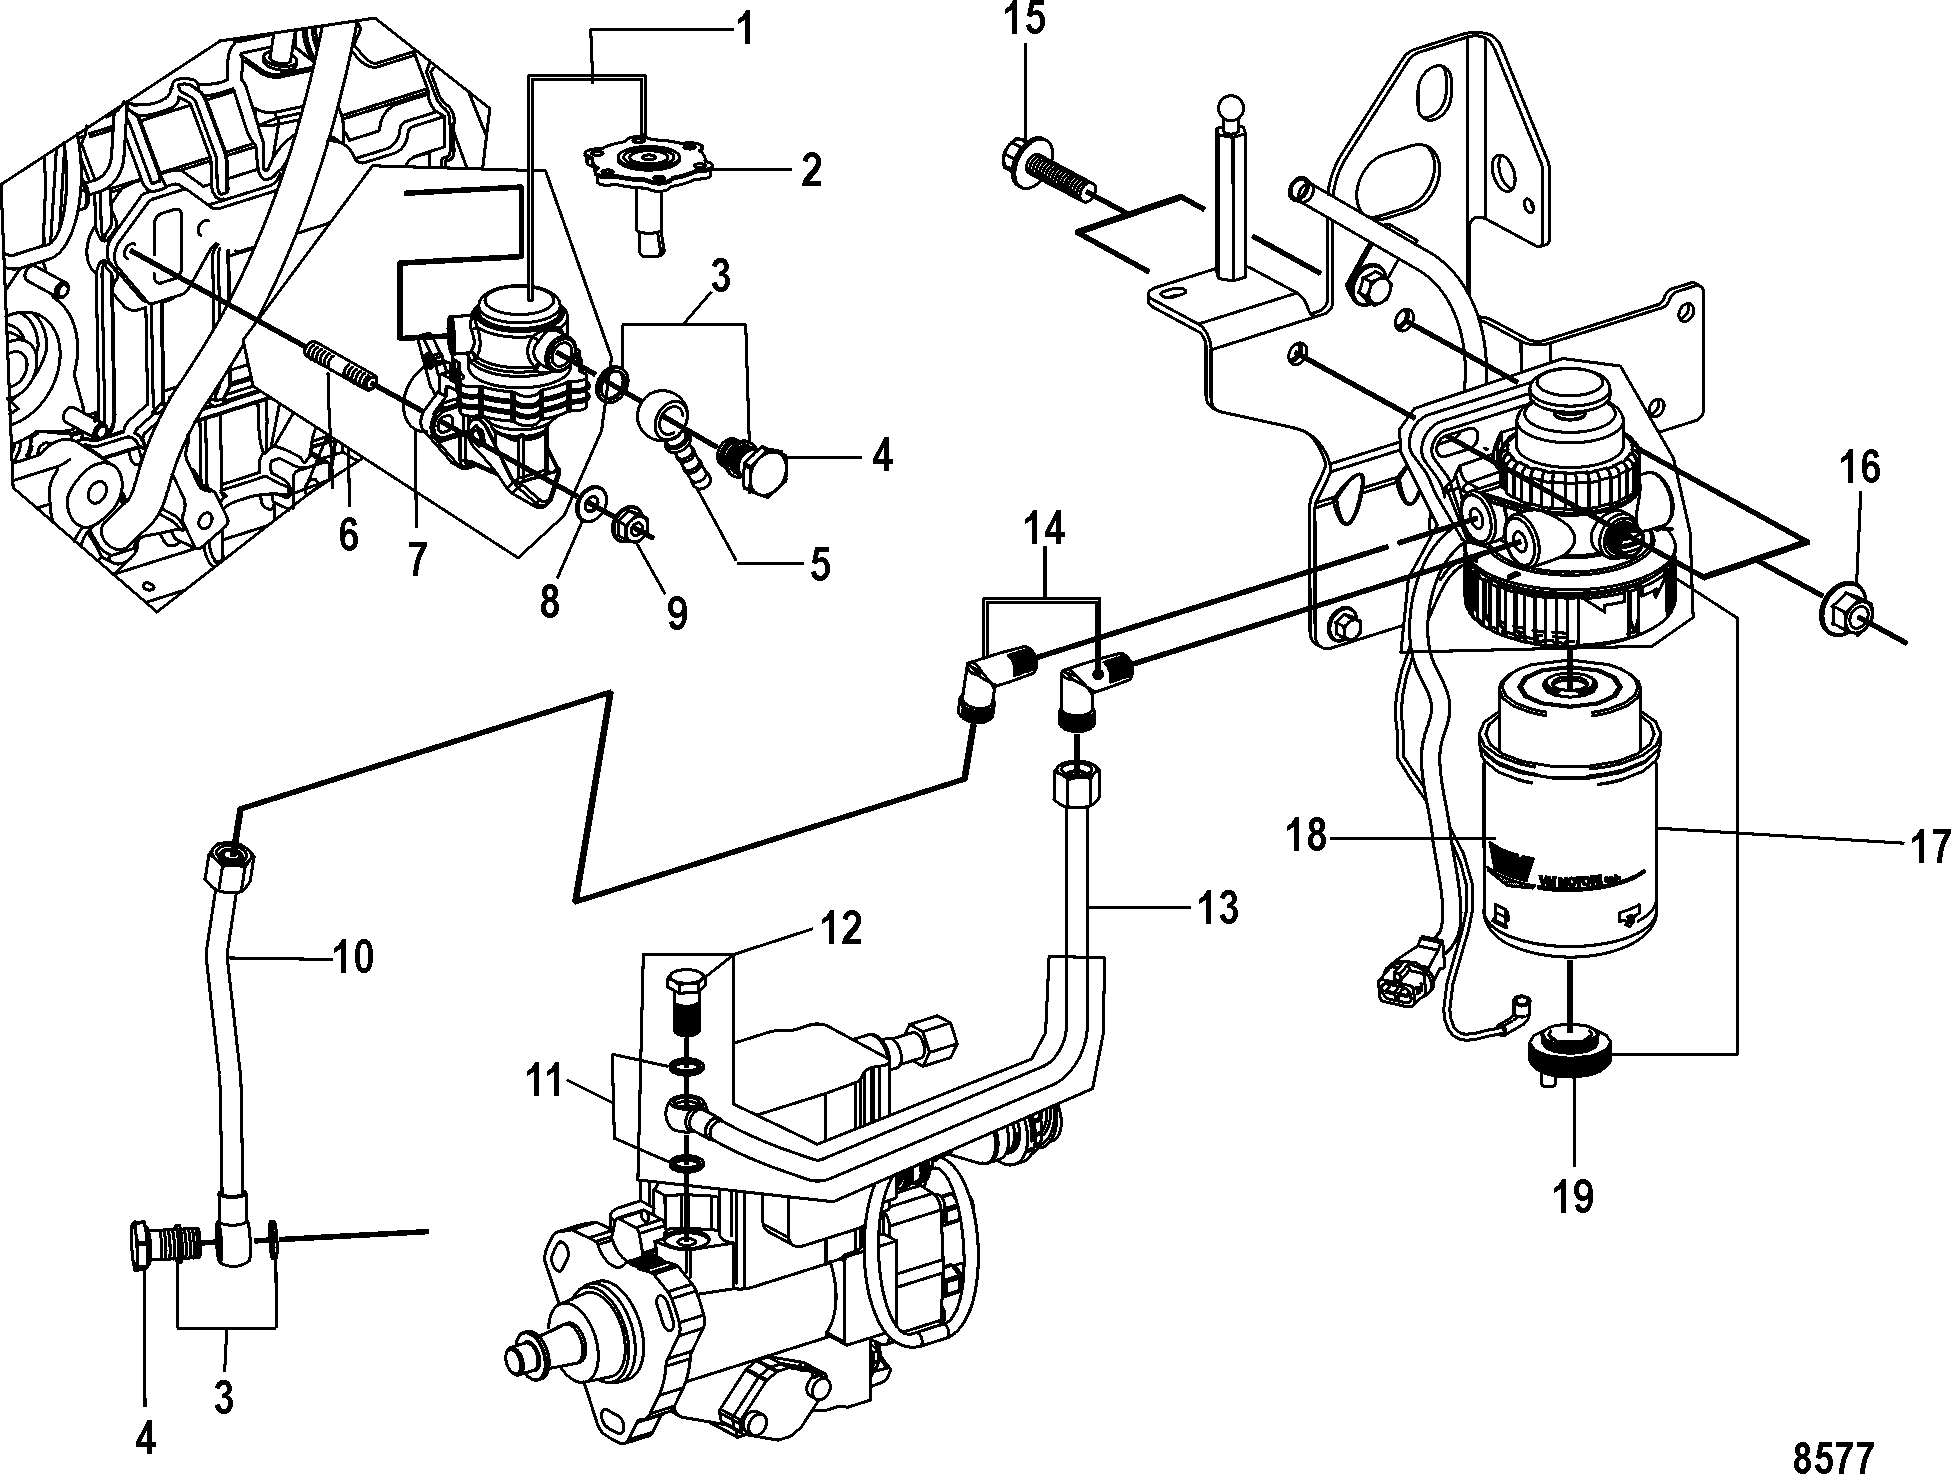 Chevrolet Silverado Hd Power Steering Diagram